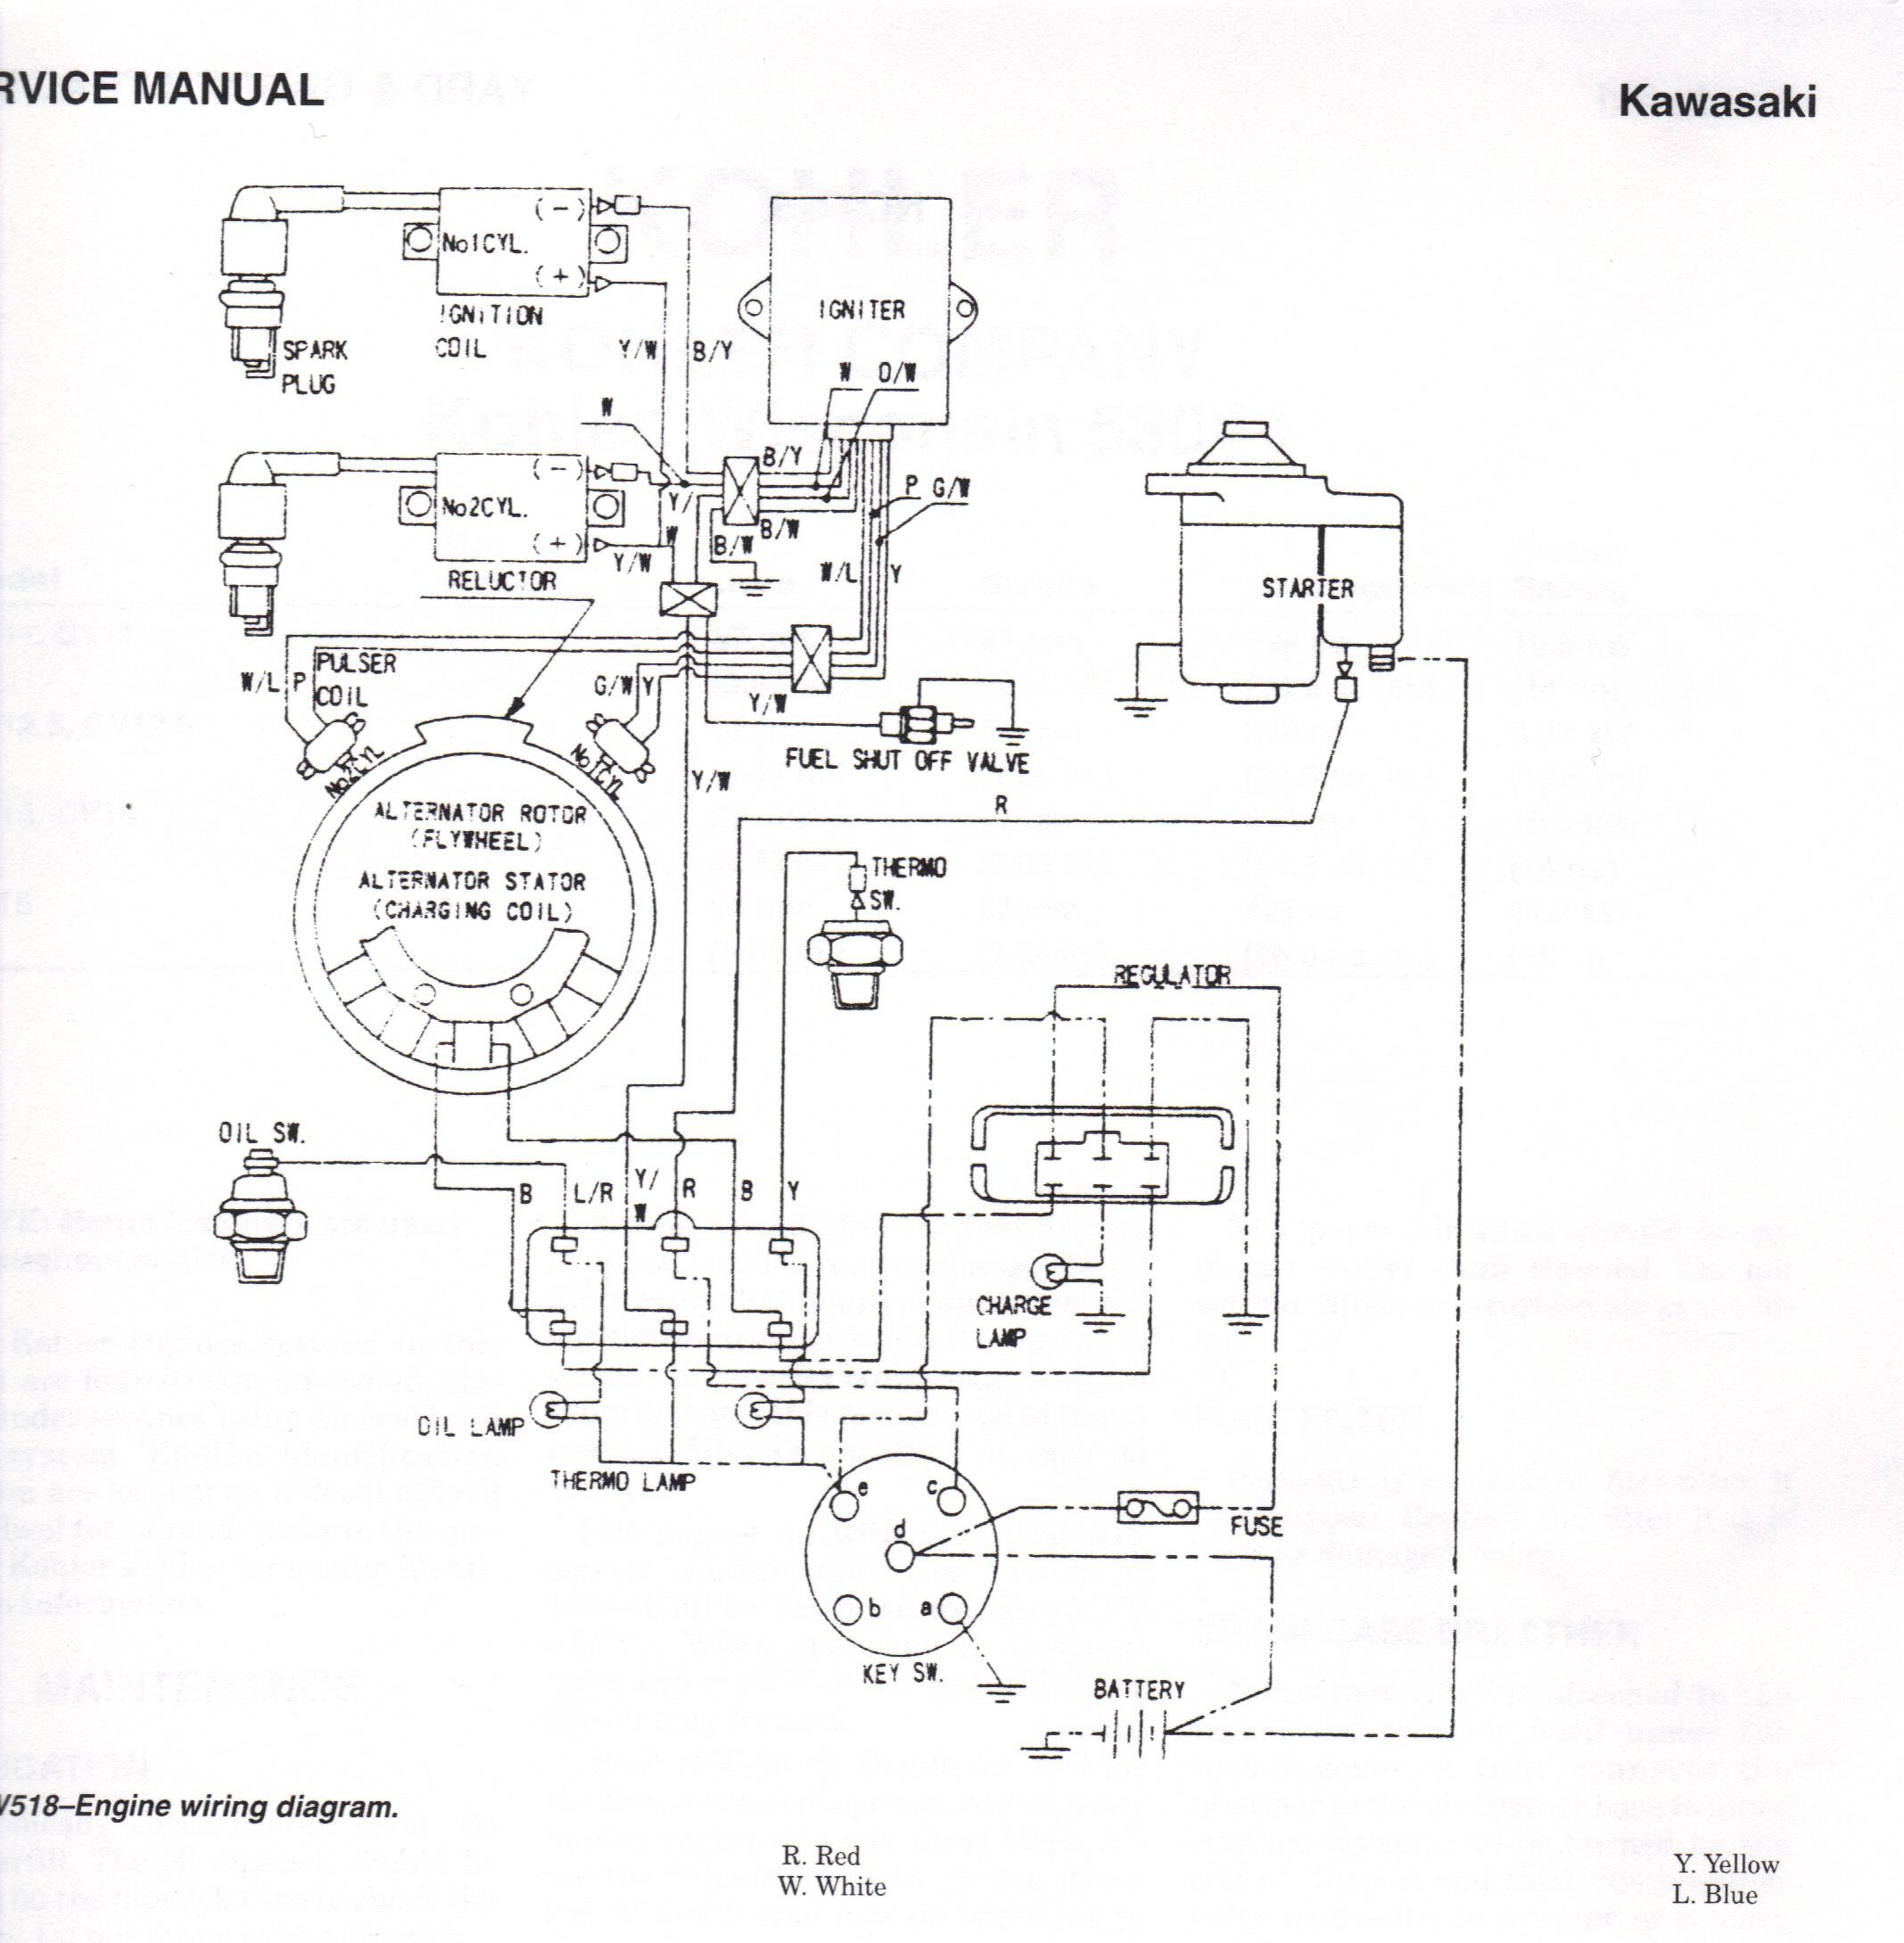 Electrical Scheme for A John Deere Gx345 Need to Find Info On Electrical Schematic for Deere 345 Lawn Of Electrical Scheme for A John Deere Gx345